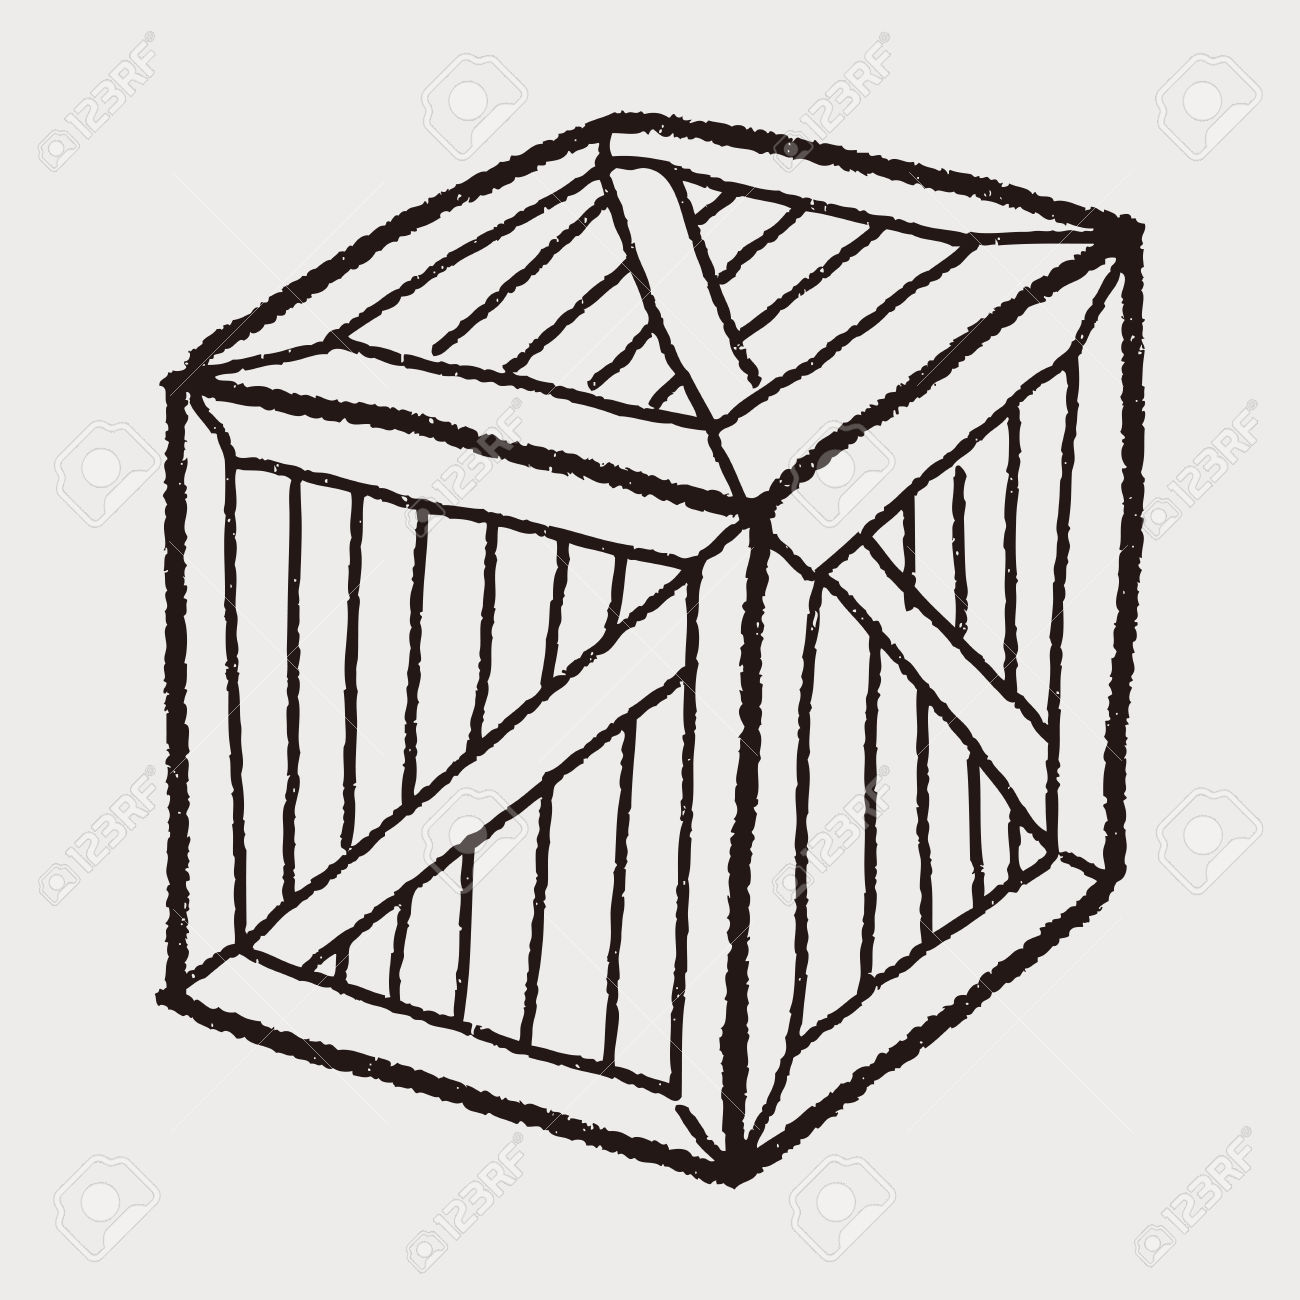 Free Wooden Box Cliparts Download Free Clip Art Free